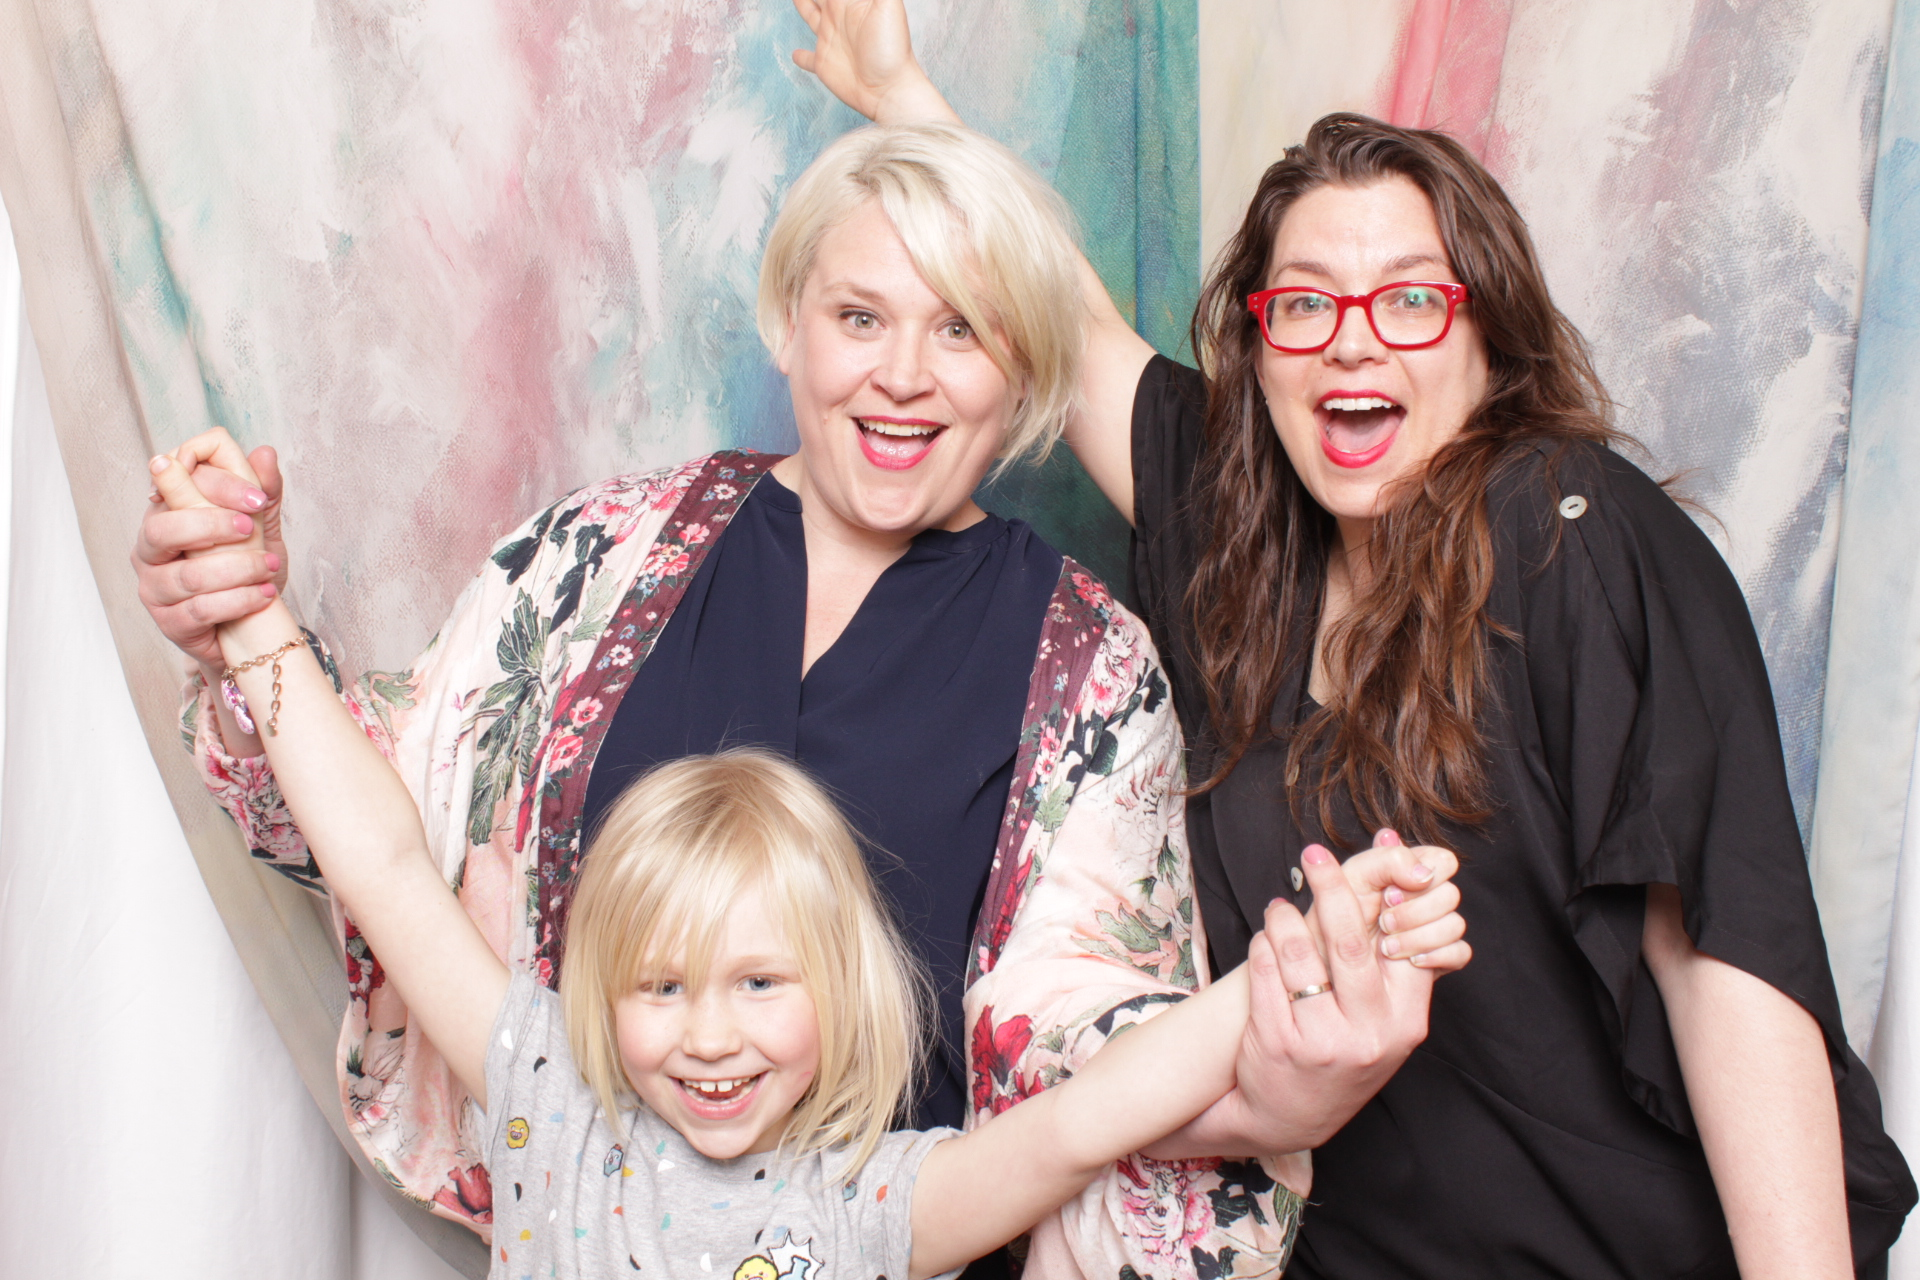 Minneapolis_Photo_Booth_party_rentals (11).jpg